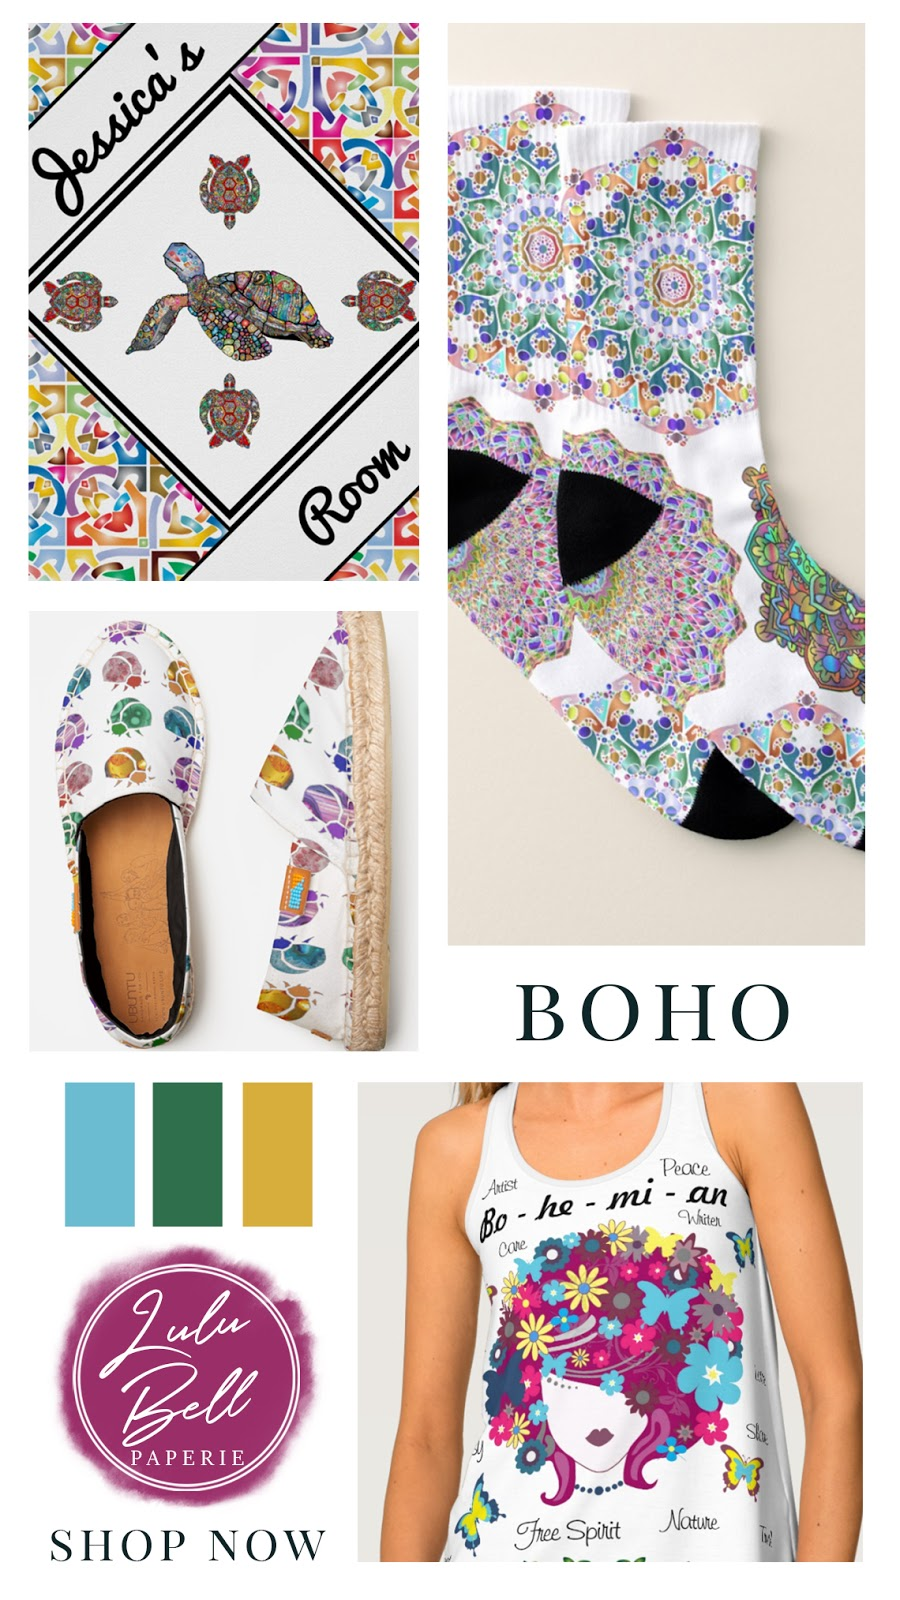 Bohemian Rainbow Home & Gifts Collection - Personalized Room Poster, Mandala Socks, Beetle Espadrilles, and Hippie Tank Top